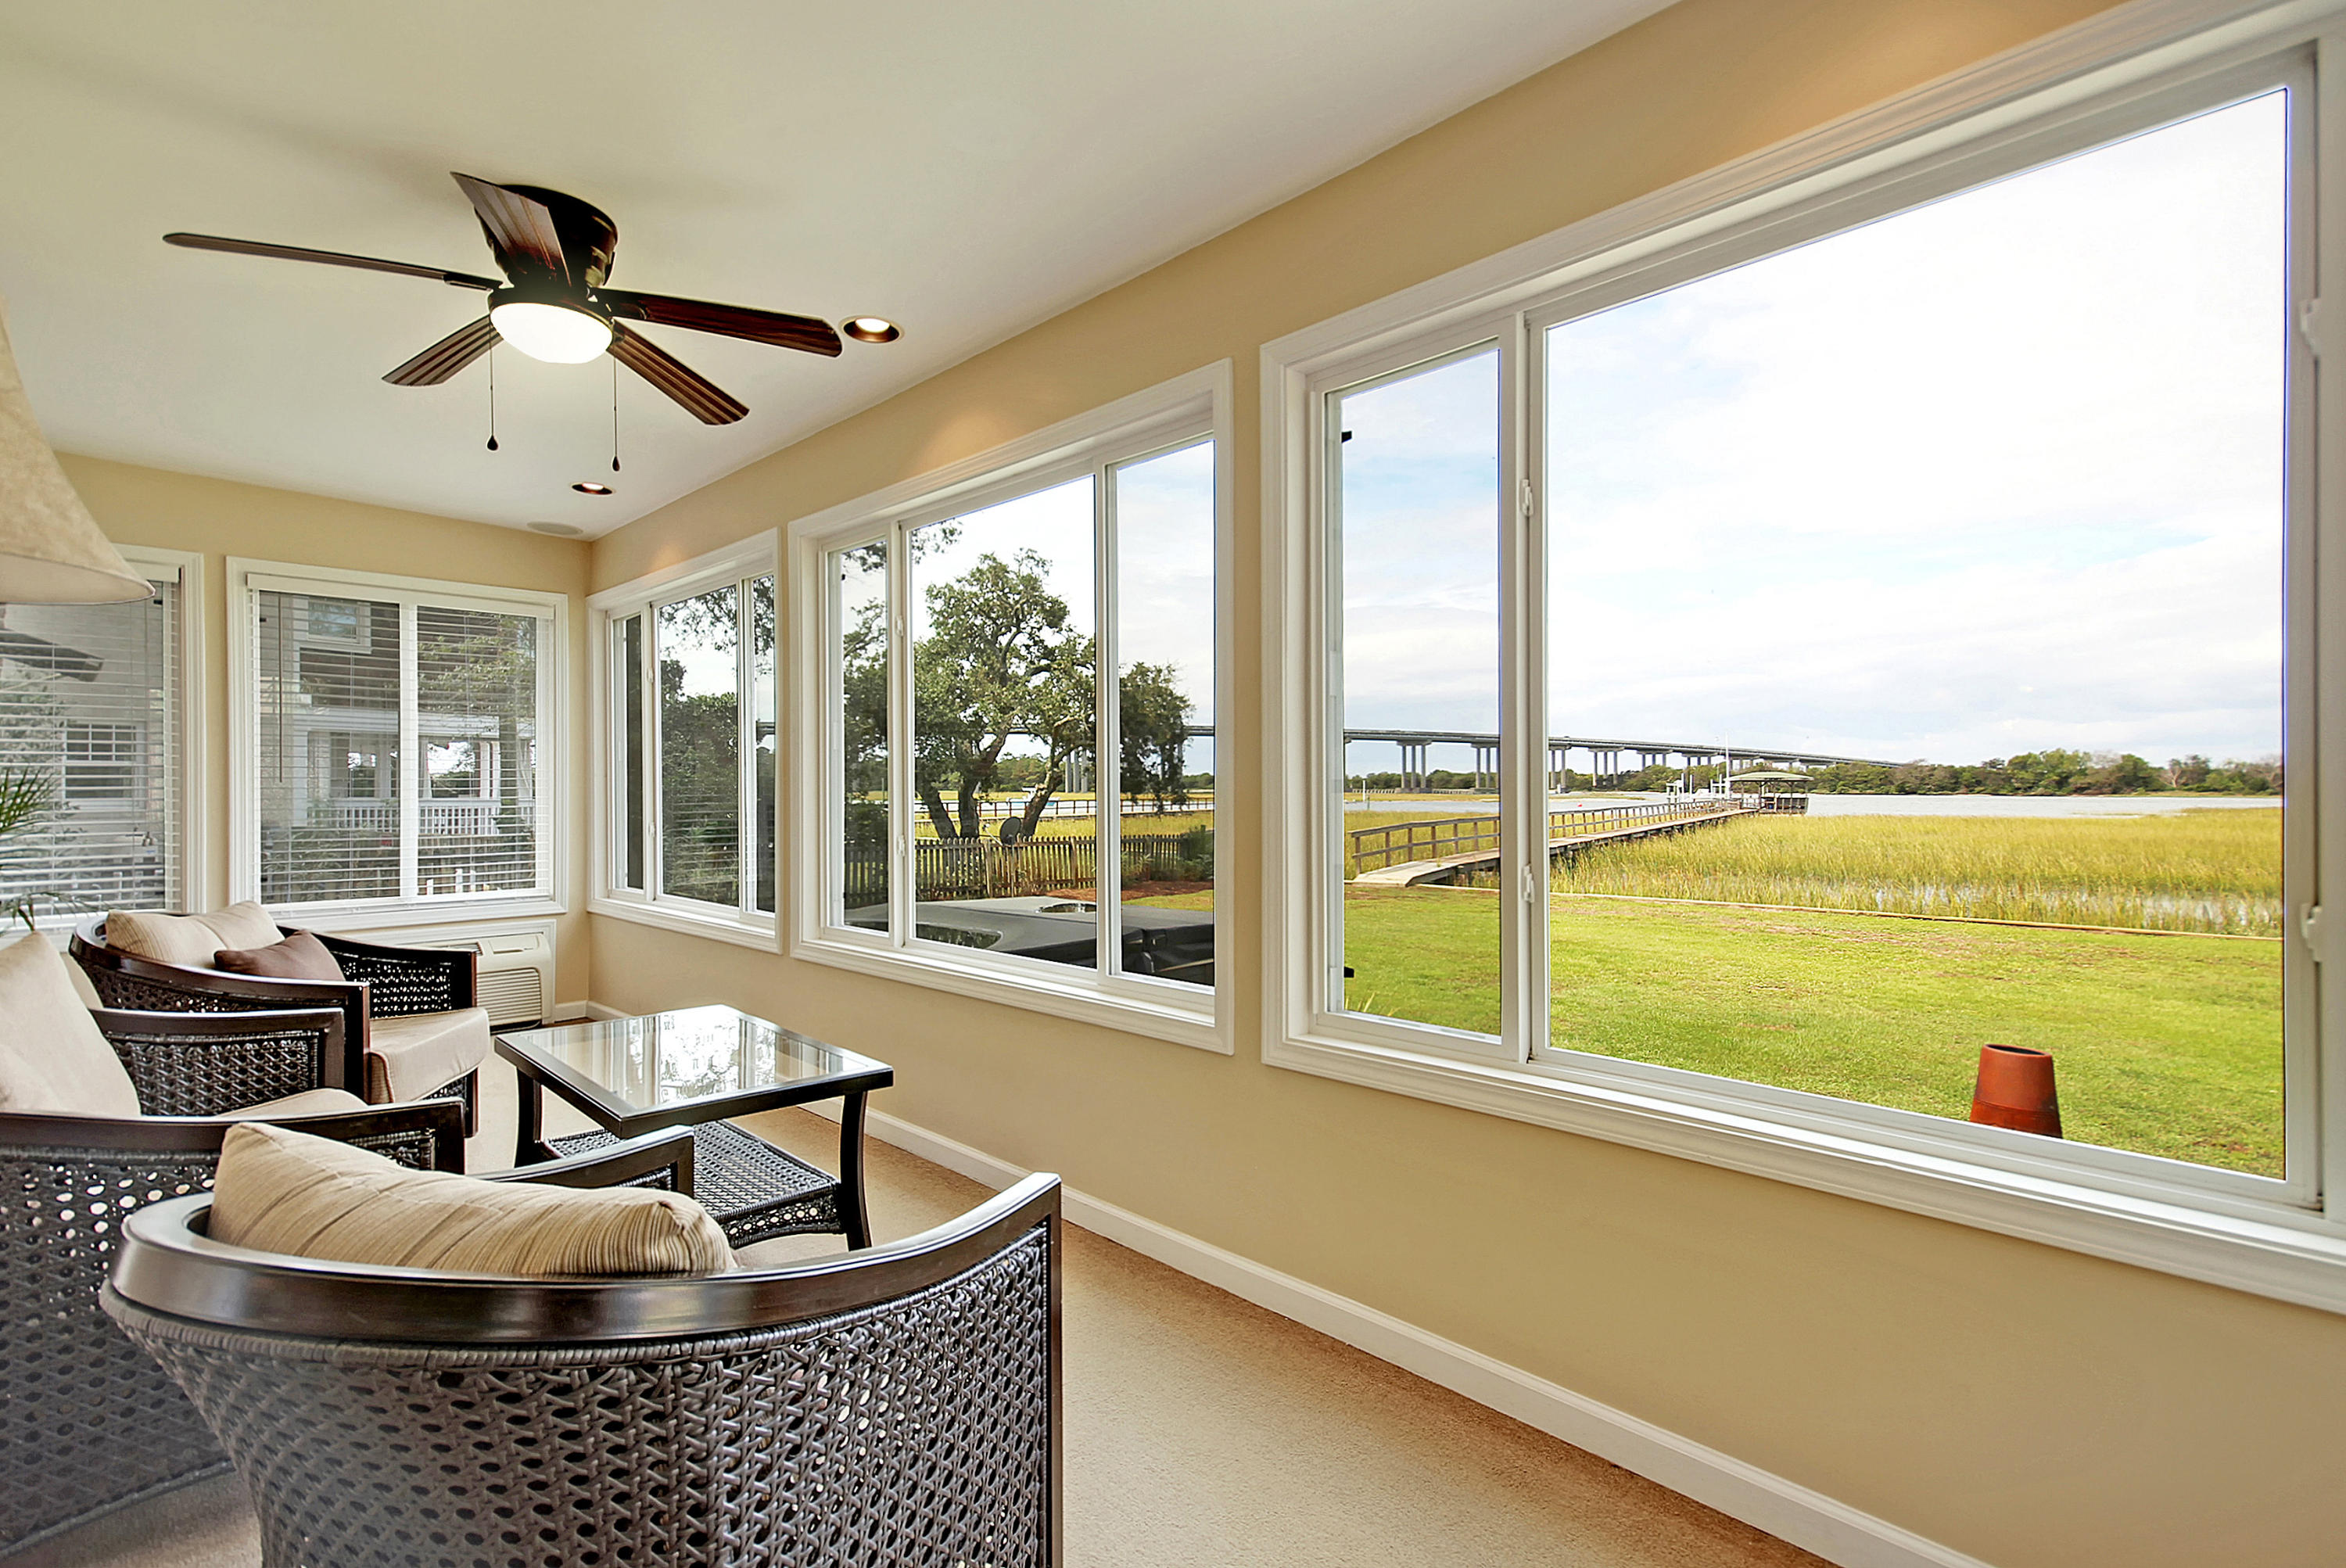 Isle of Palms Homes For Sale - 1903 Waterway, Isle of Palms, SC - 51